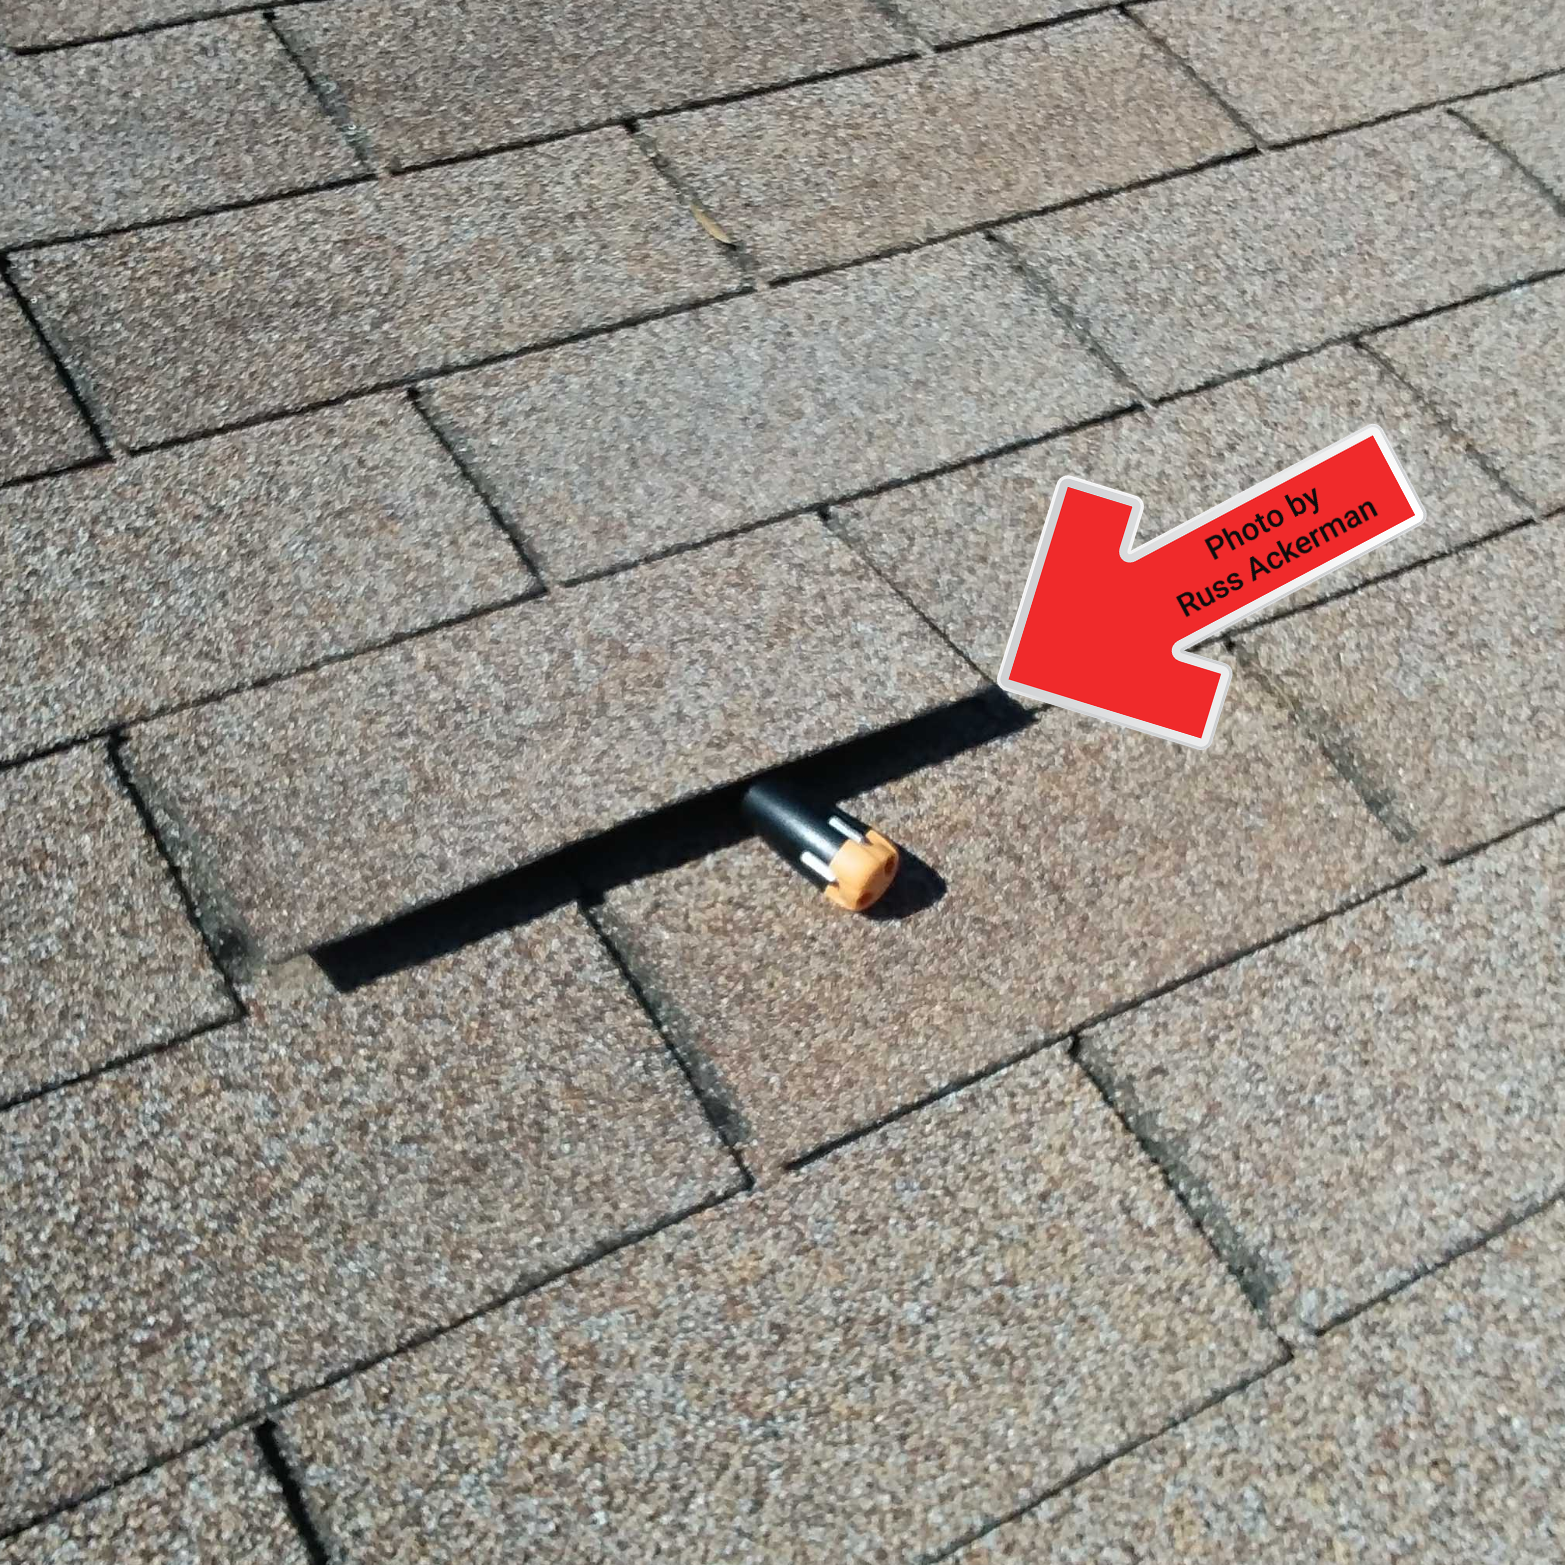 Failed bonding at asphalt roof shingles is the first sign of an aging roof. This will allow wind damage during summer monsoons.